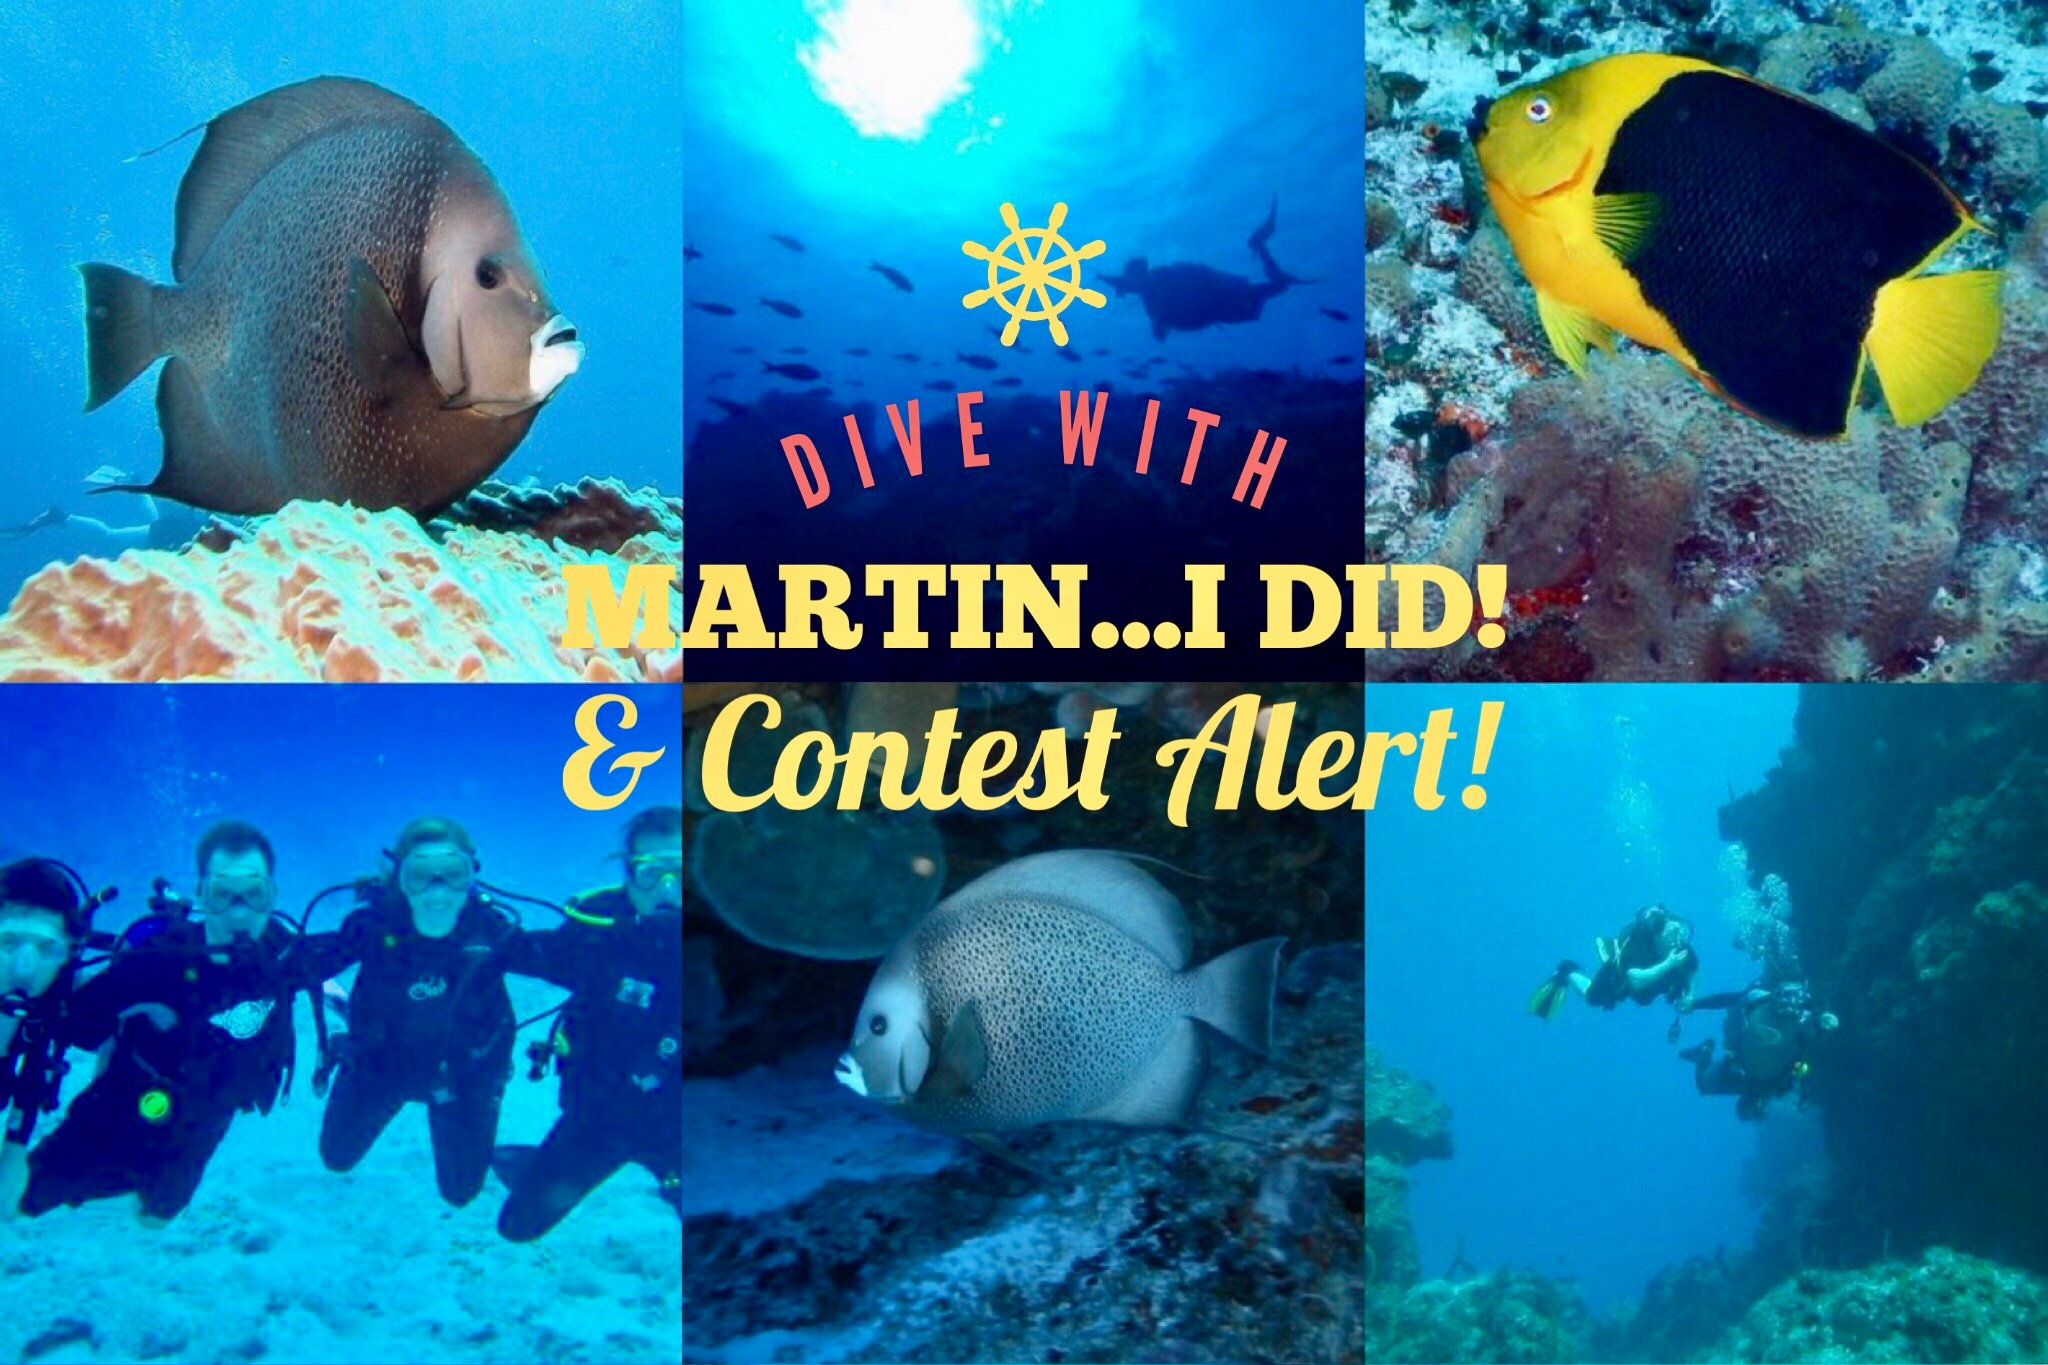 Cozumel Scuba Diving and Contest Alert